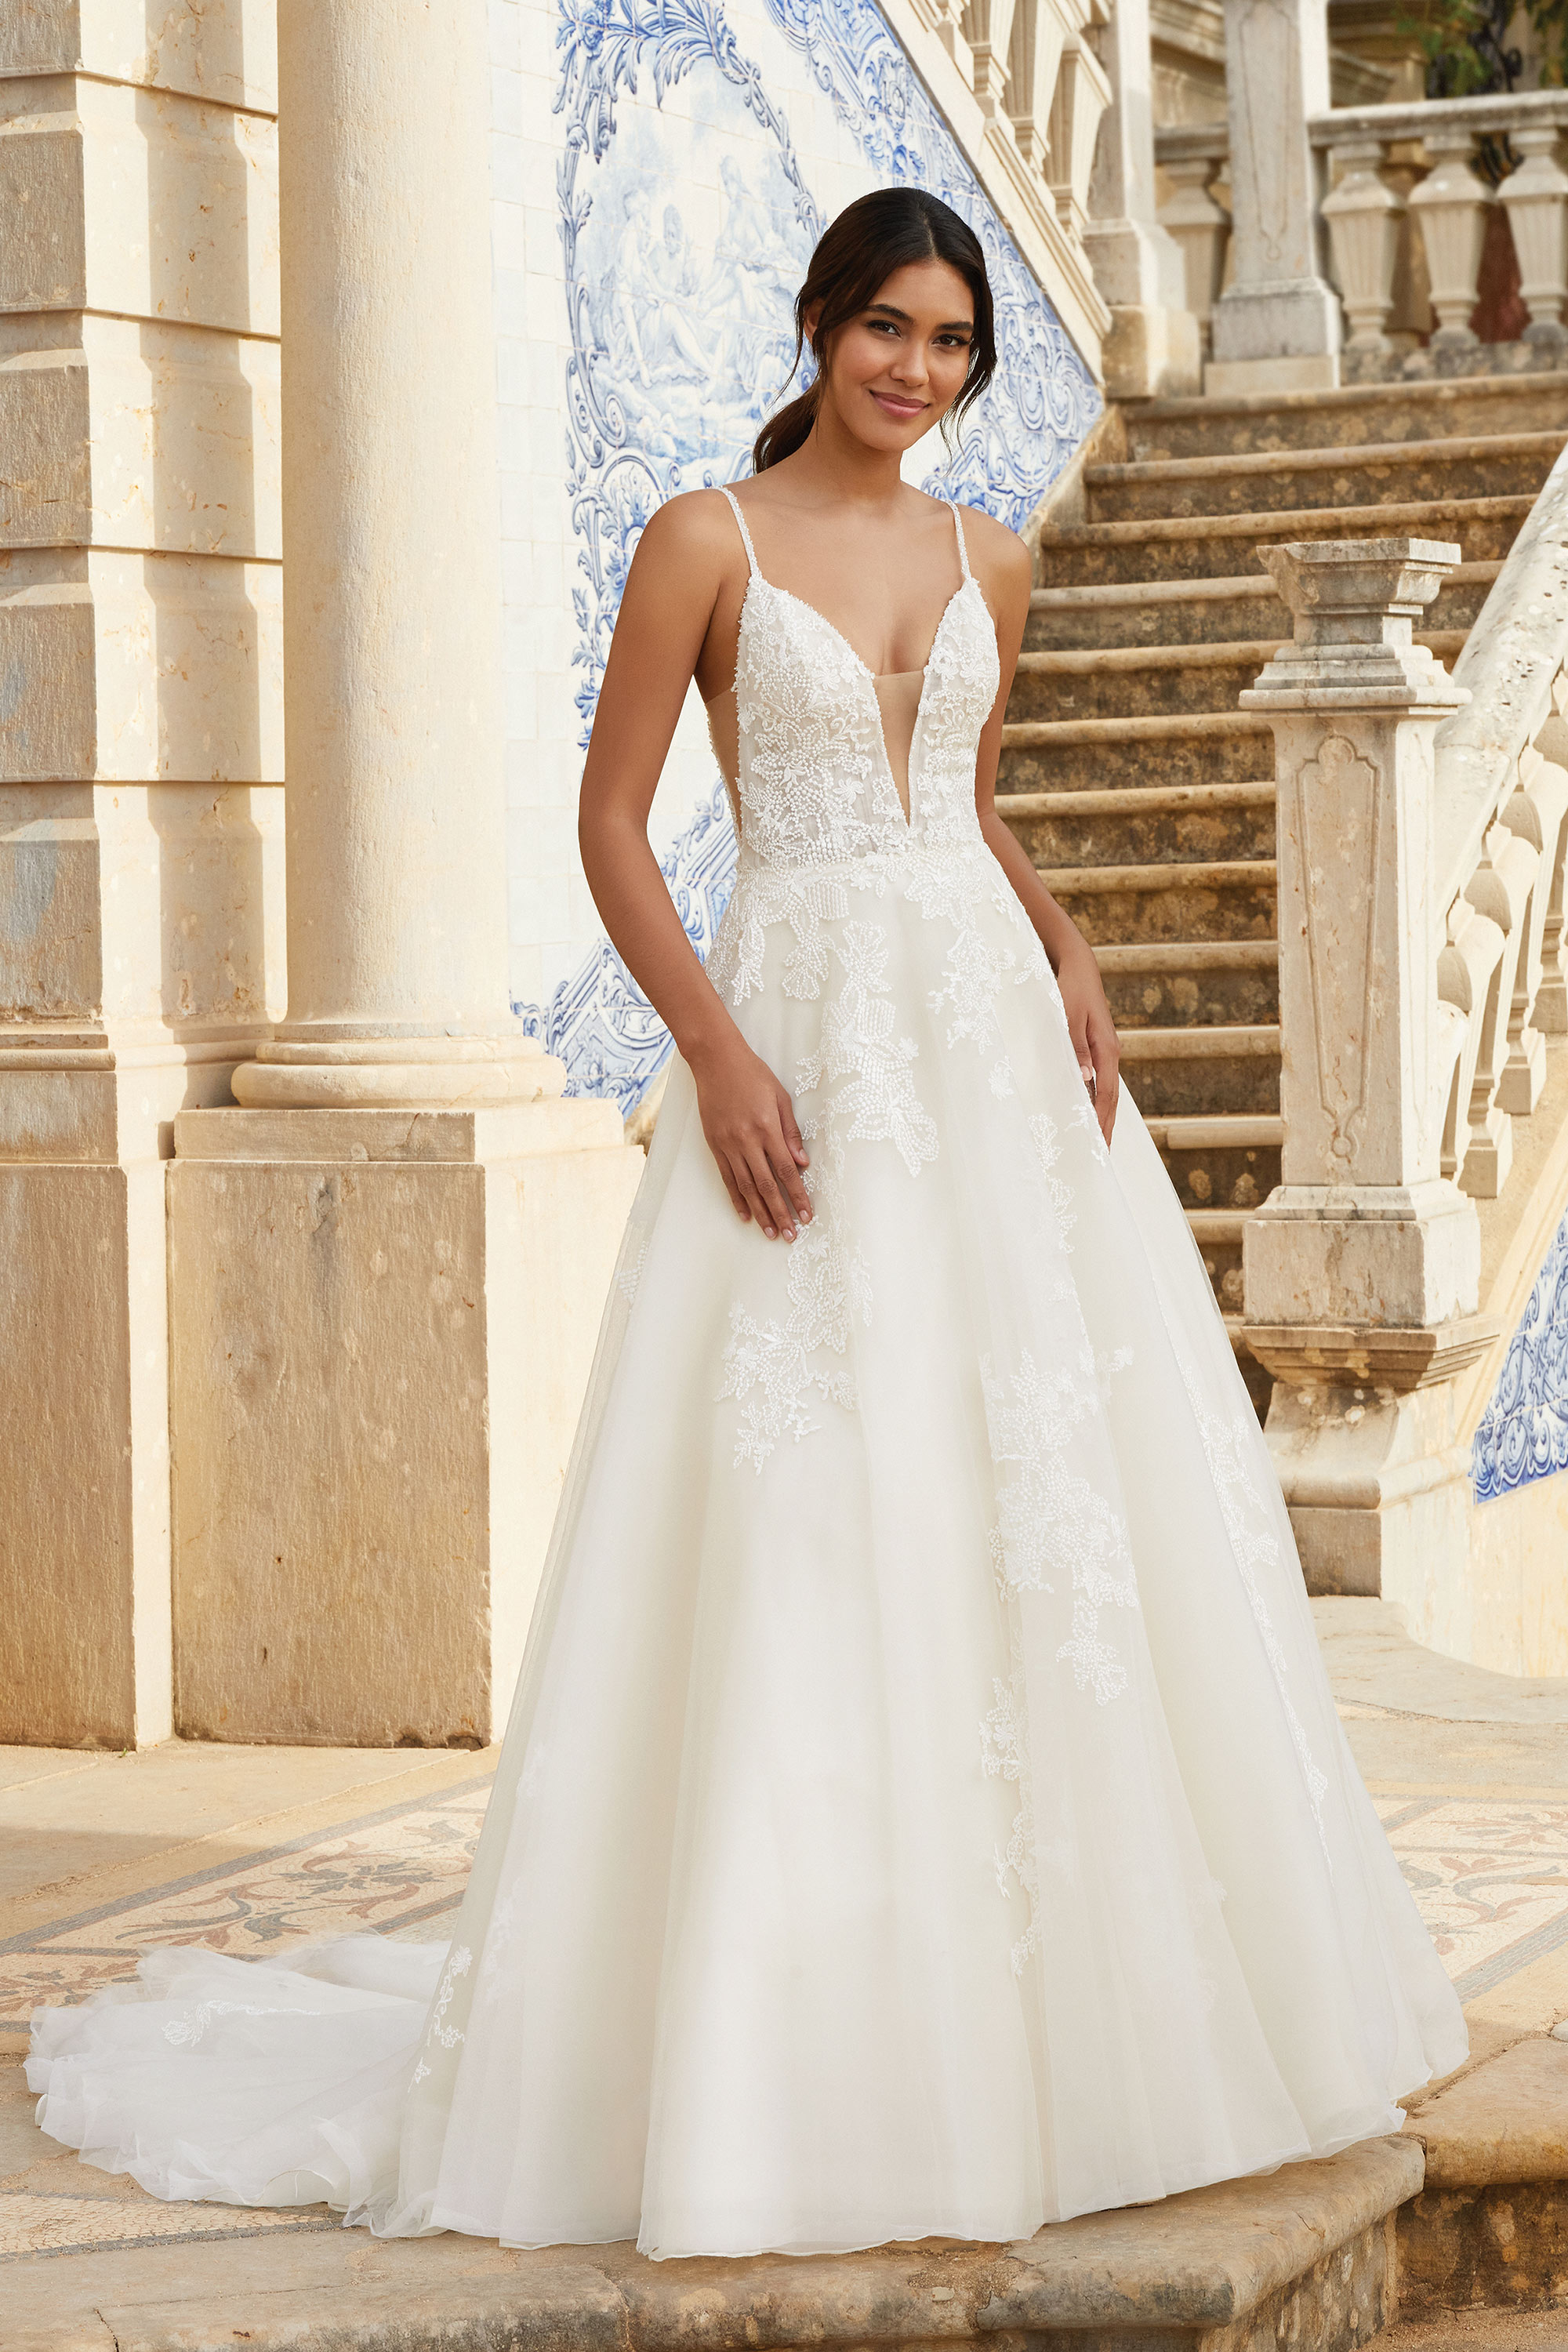 44108_FF_Sincerity-Bridal_cB6qNEW